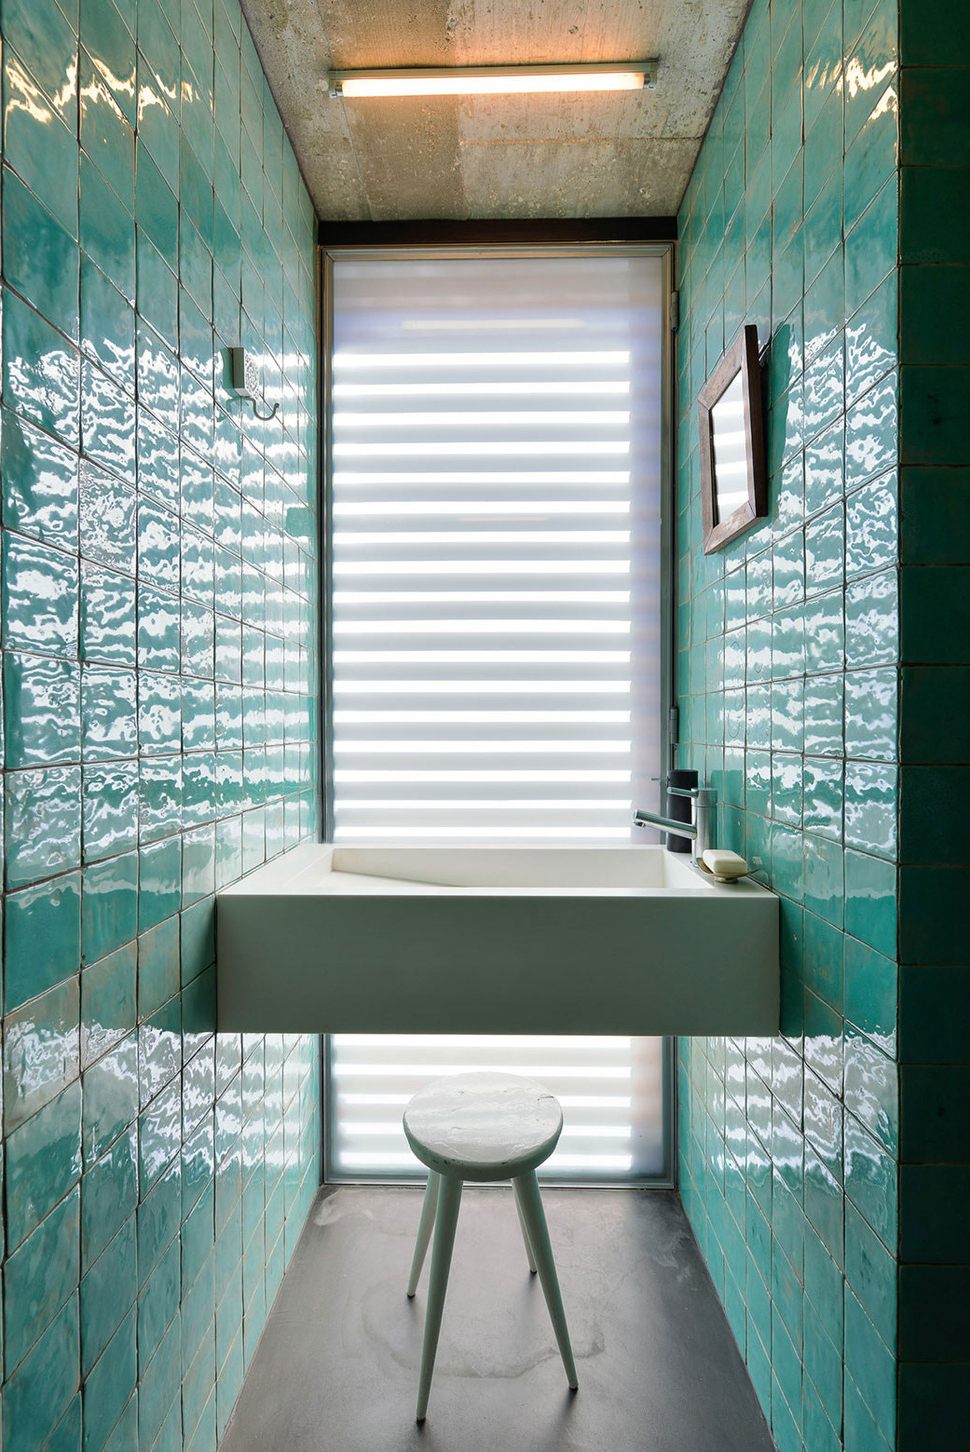 35 Seafoam Green Bathroom Tile Ideas And Pictures 2019